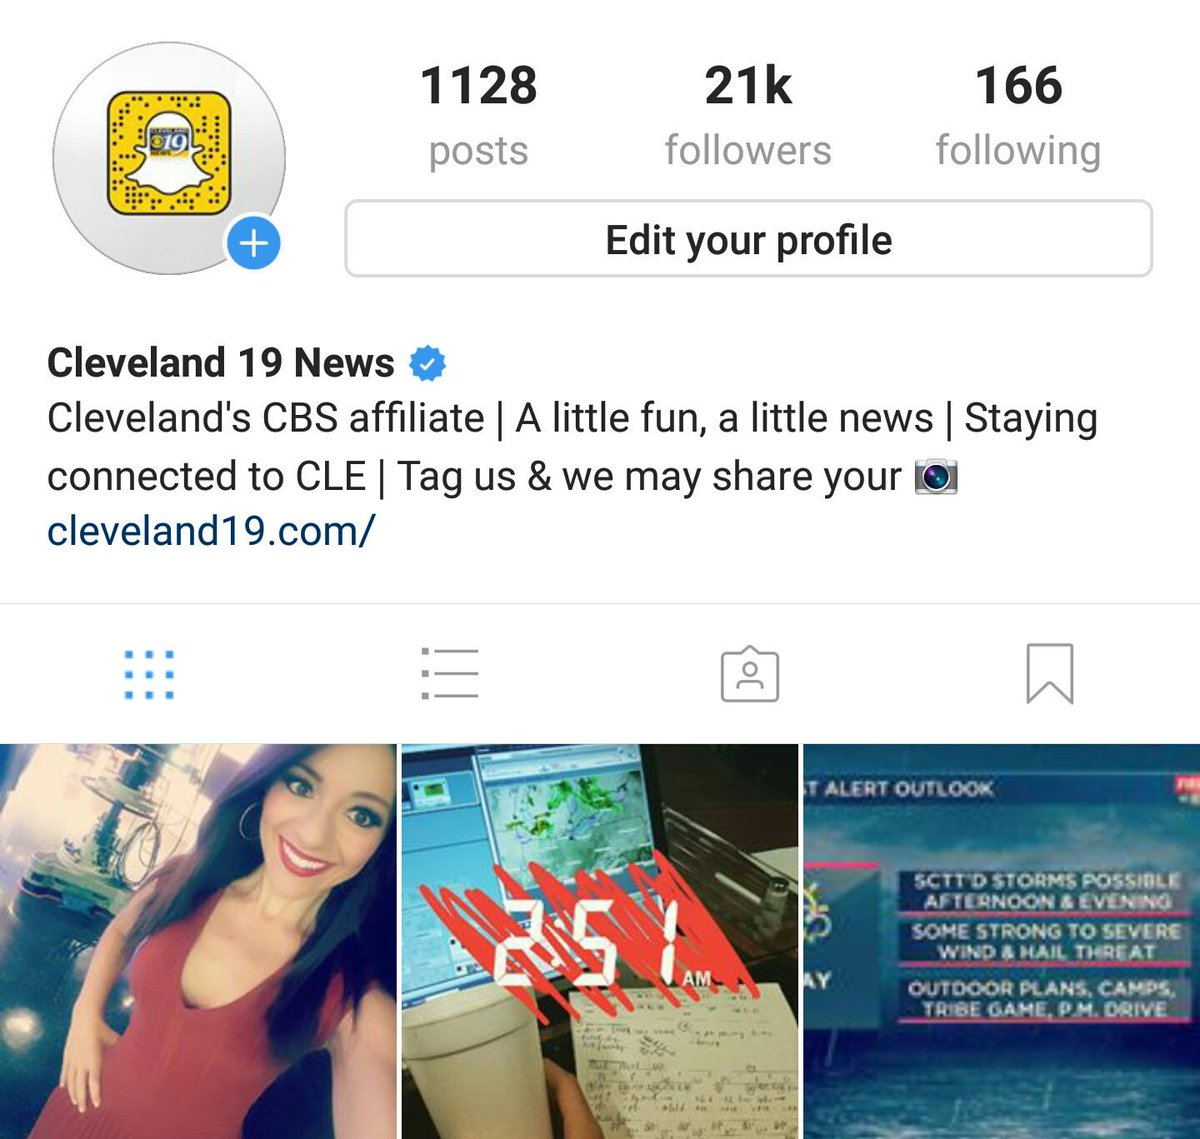 It&#39;s a busy morning! Talking storm potential, high heat, AND taking over the @cleveland19news #Instagram page!  Follow along! <br>http://pic.twitter.com/yYR224mkg4